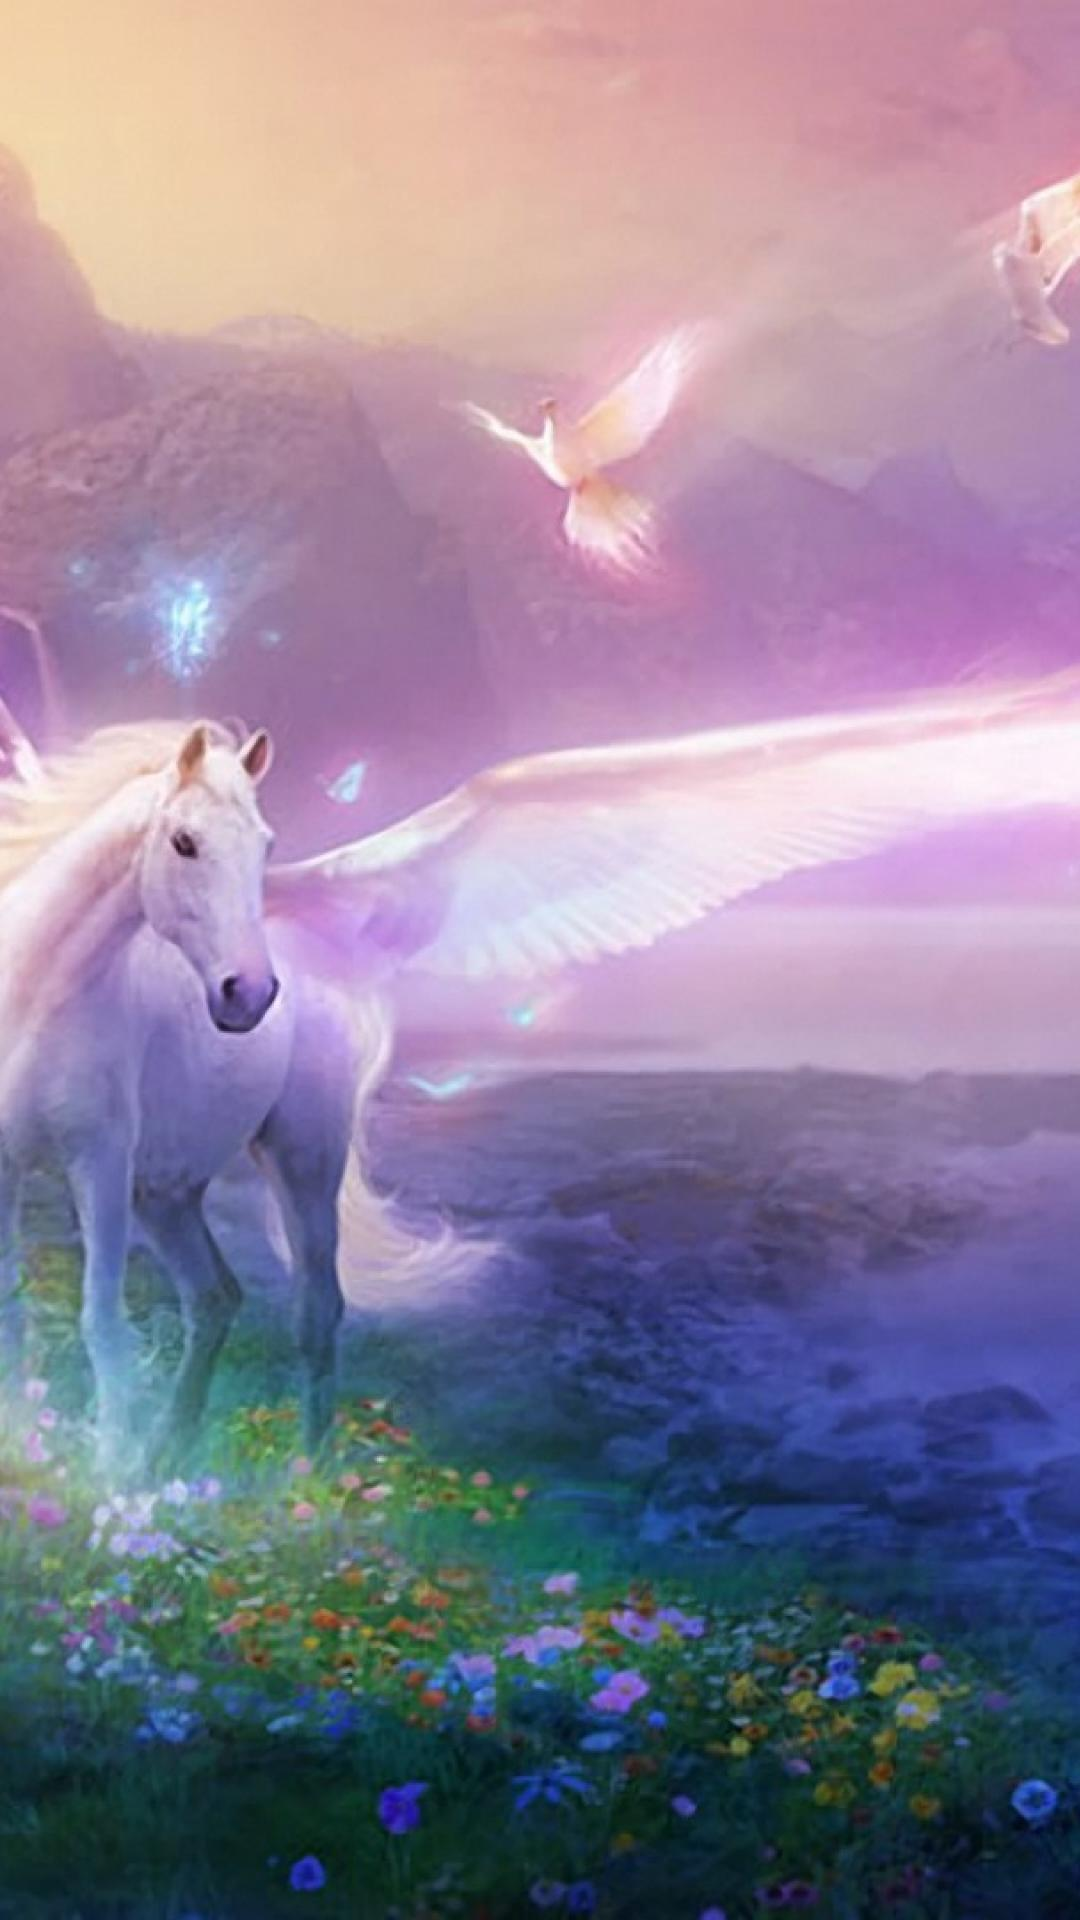 Free Download Unicorn Wallpapers For Iphone 7 Iphone 7 Plus